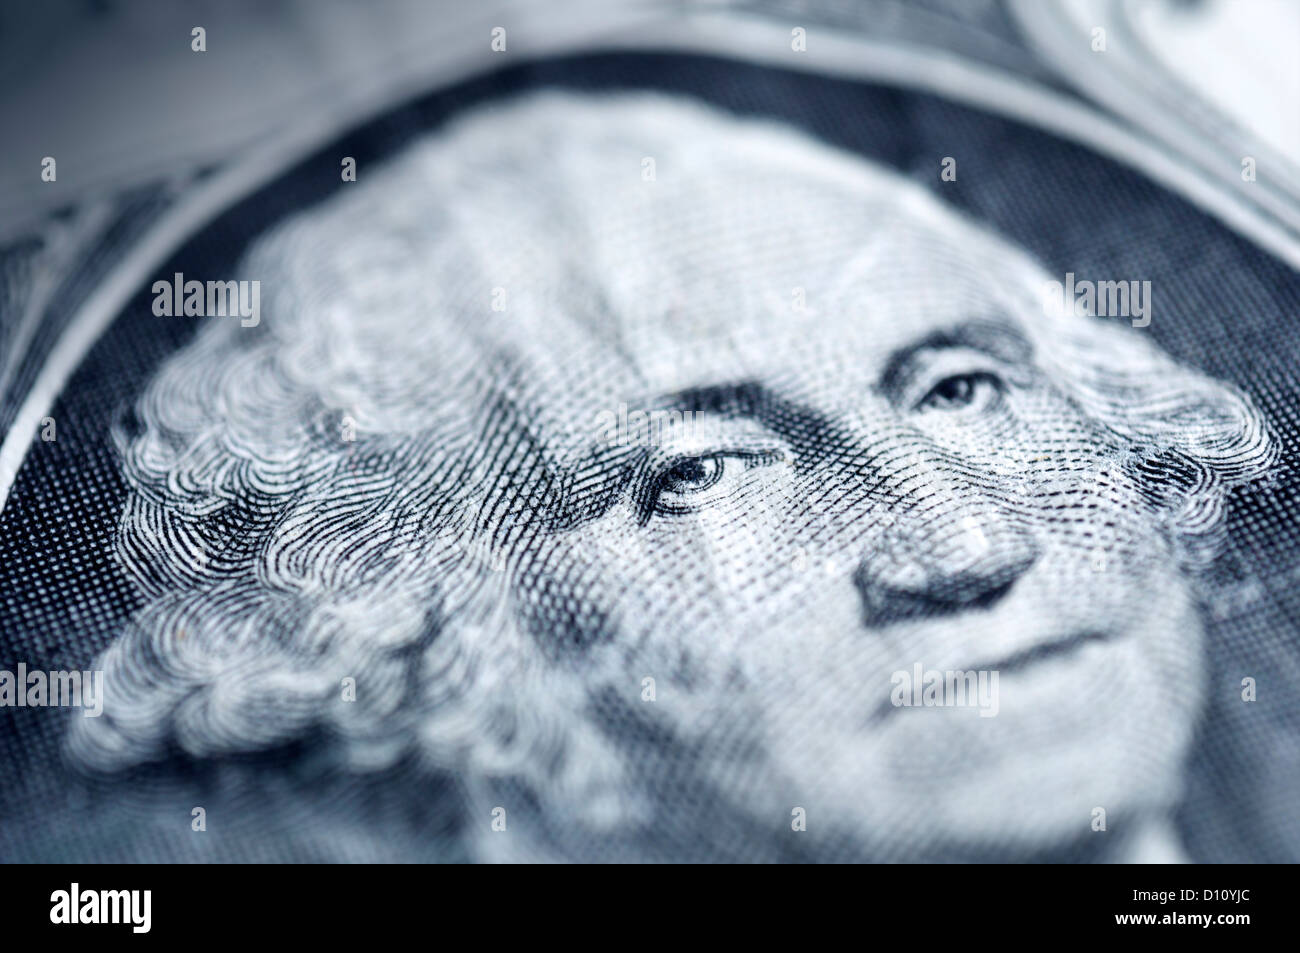 Detail of George Washington portrait on a US dollar bill - Stock Image